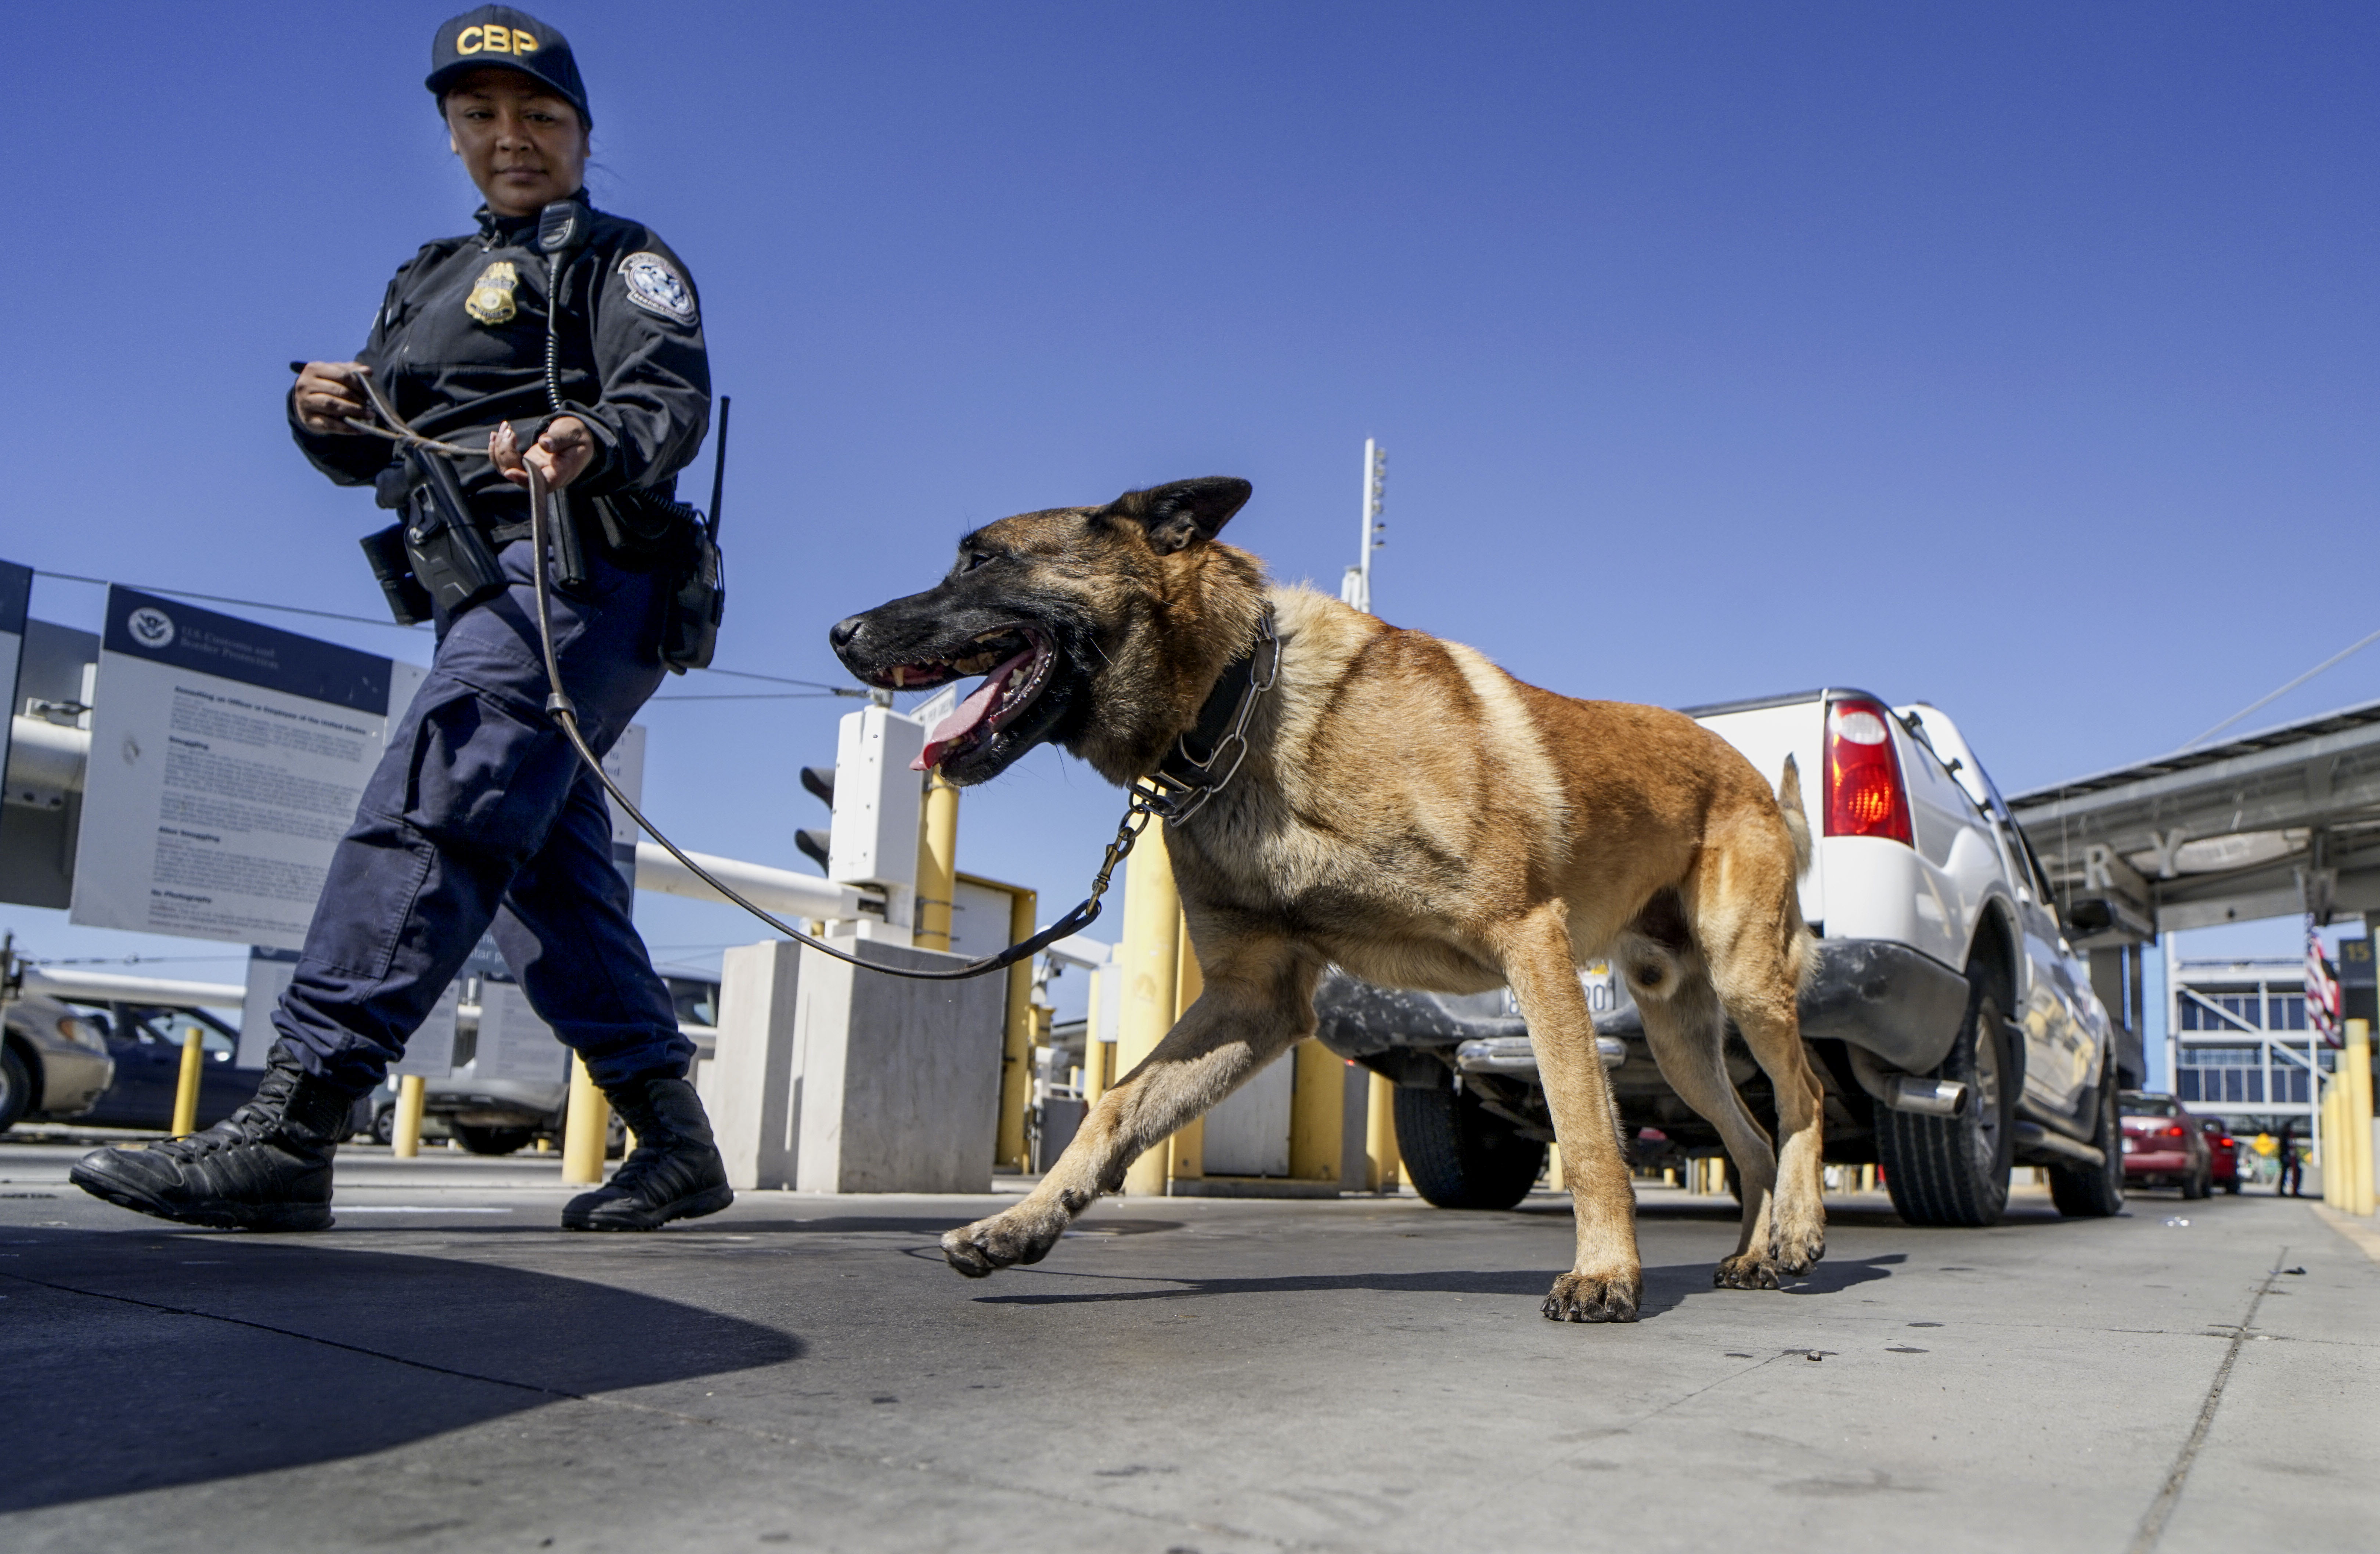 An Immigration and Customs Enforcement (ICE) K-9 agent checks automobiles for contraband in the line to enter the United States at the San Ysidro Port of Entry on October 2, 2019 in San Ysidro, California. - Fentanyl, a powerful painkiller approved by the US Food and Drug Administration for a range of conditions, has been central to the American opioid crisis which began in the late 1990s. China was the first country to manufacture illegal fentanyl for the US market, but the problem surged when trafficking through Mexico began around 2005, according to Donovan. (Photo by SANDY HUFFAKER / AFP) (Photo by SANDY HUFFAKER/AFP via Getty Images)